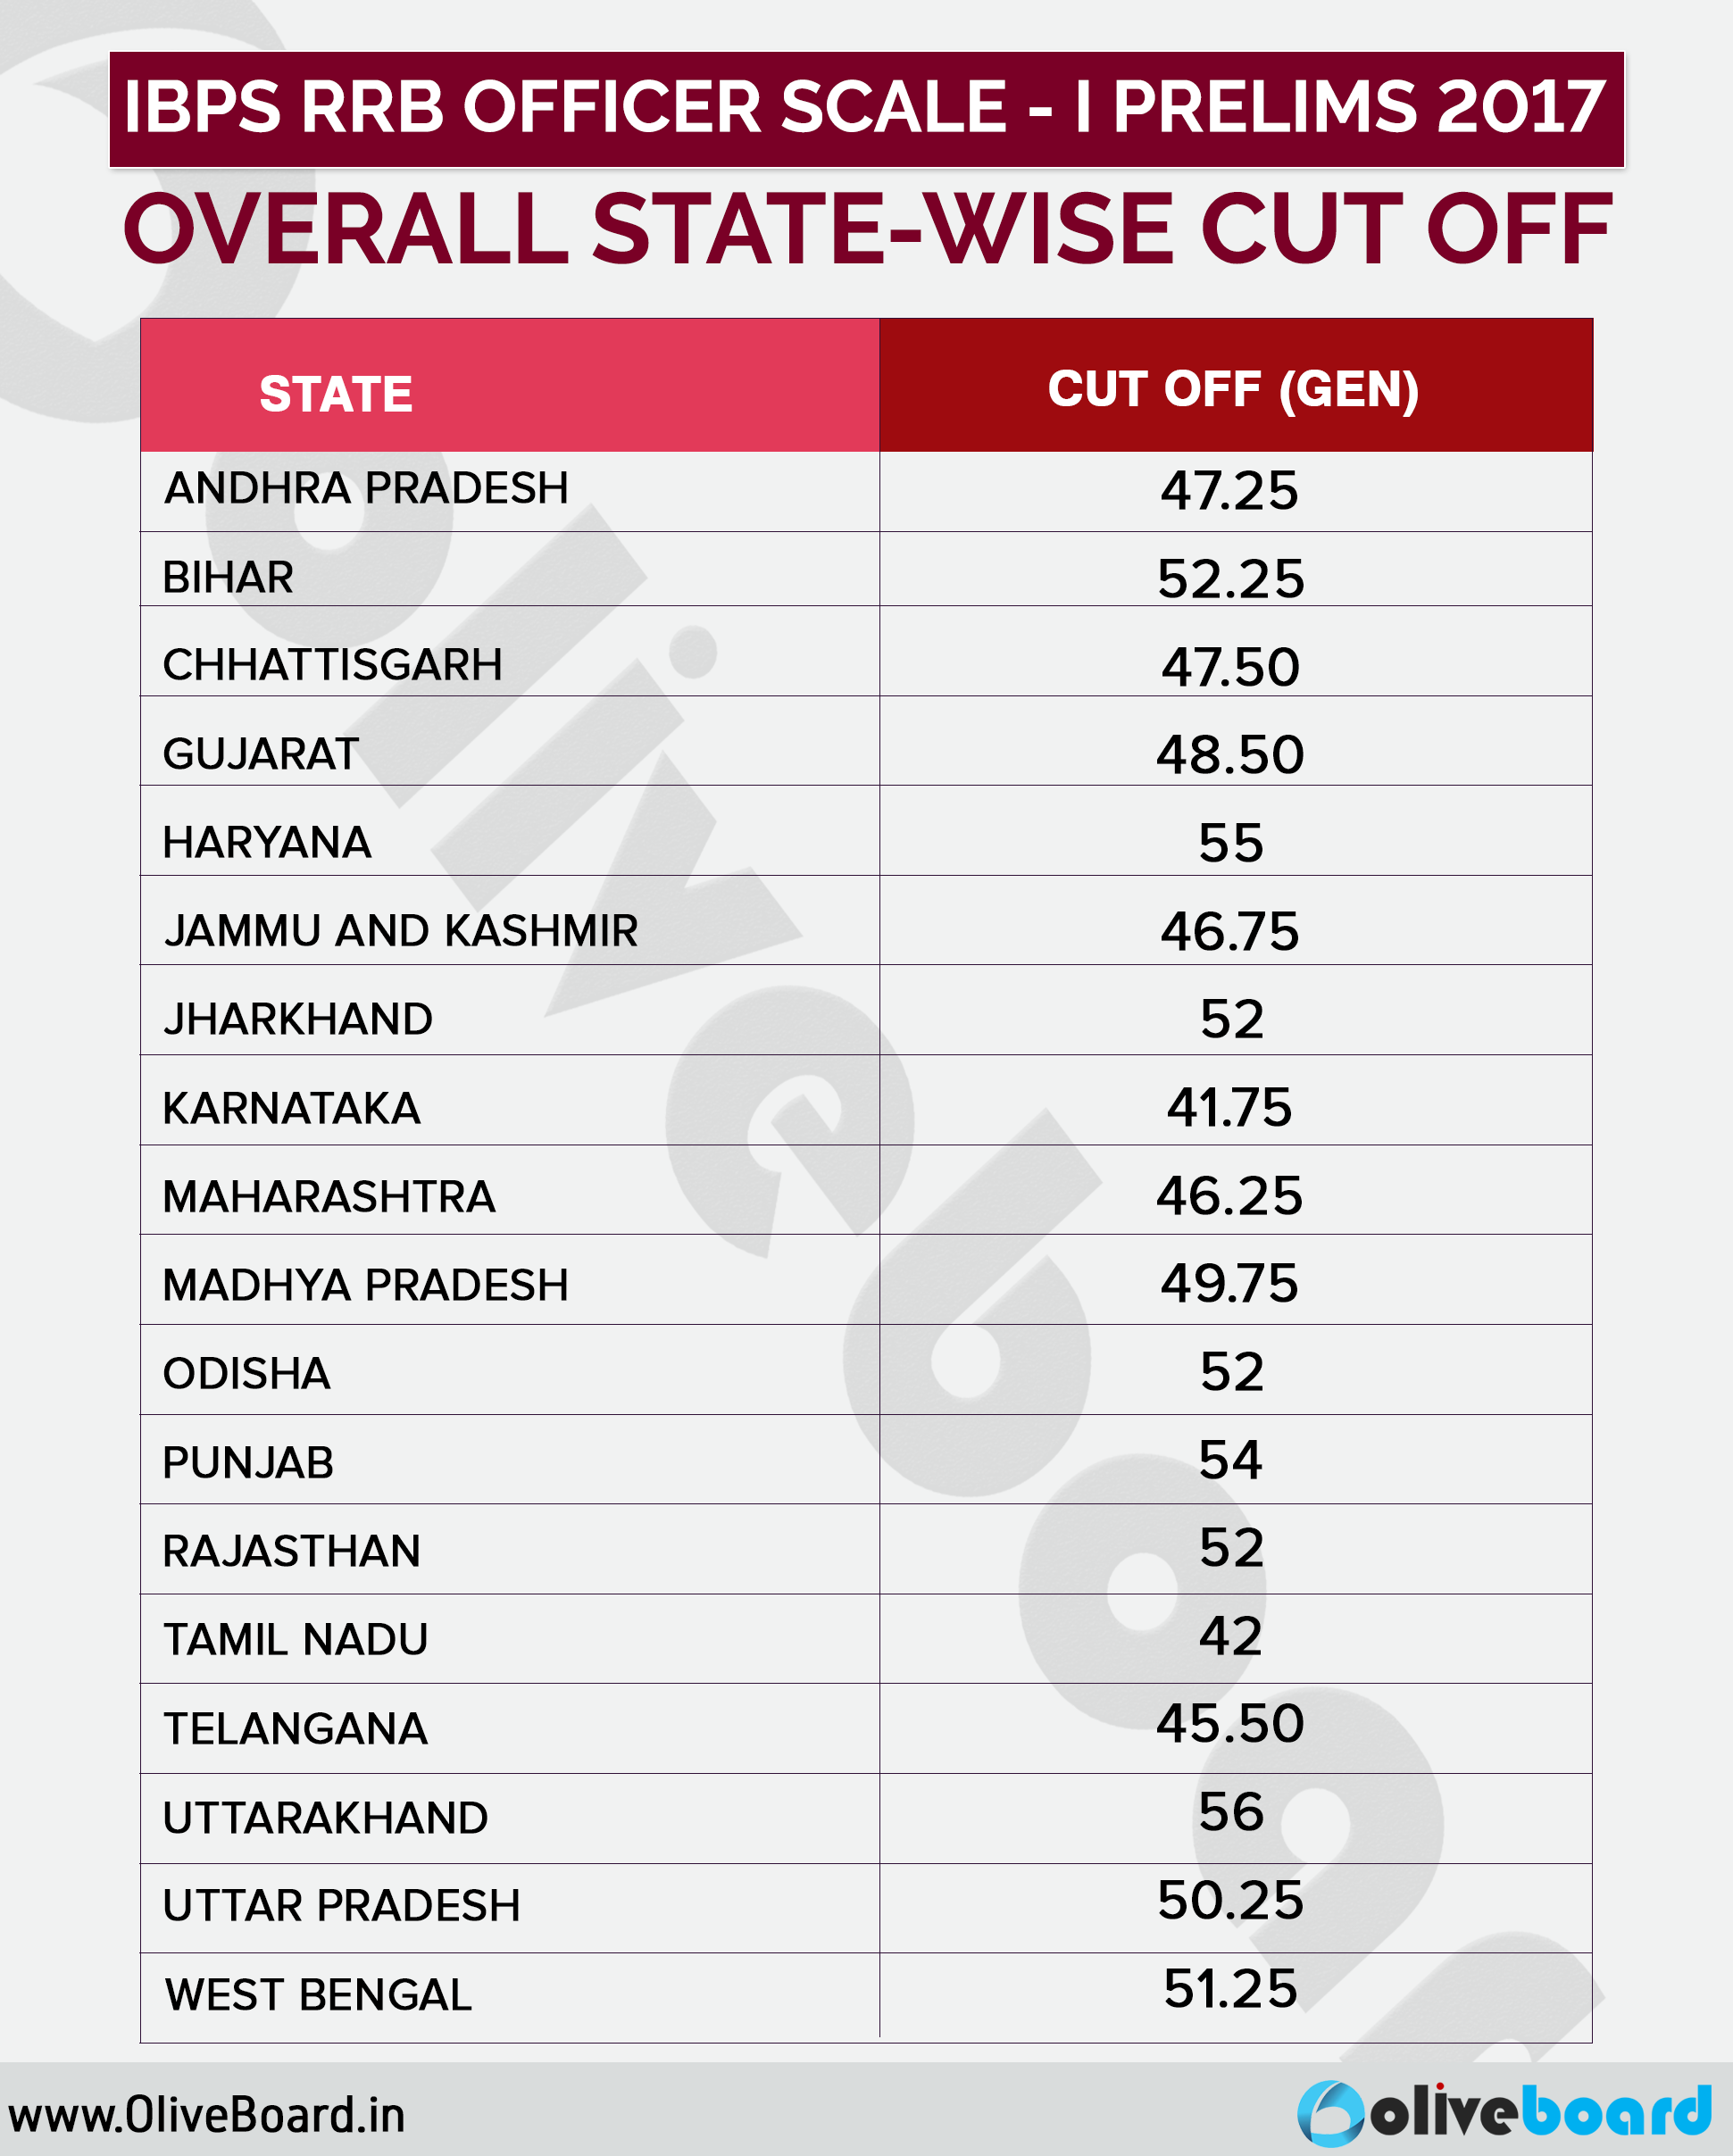 OVERALL-STATE-WISE-CUT-OFF-OF-IBPS-RRB-PO-PRELIMS-2017(1)